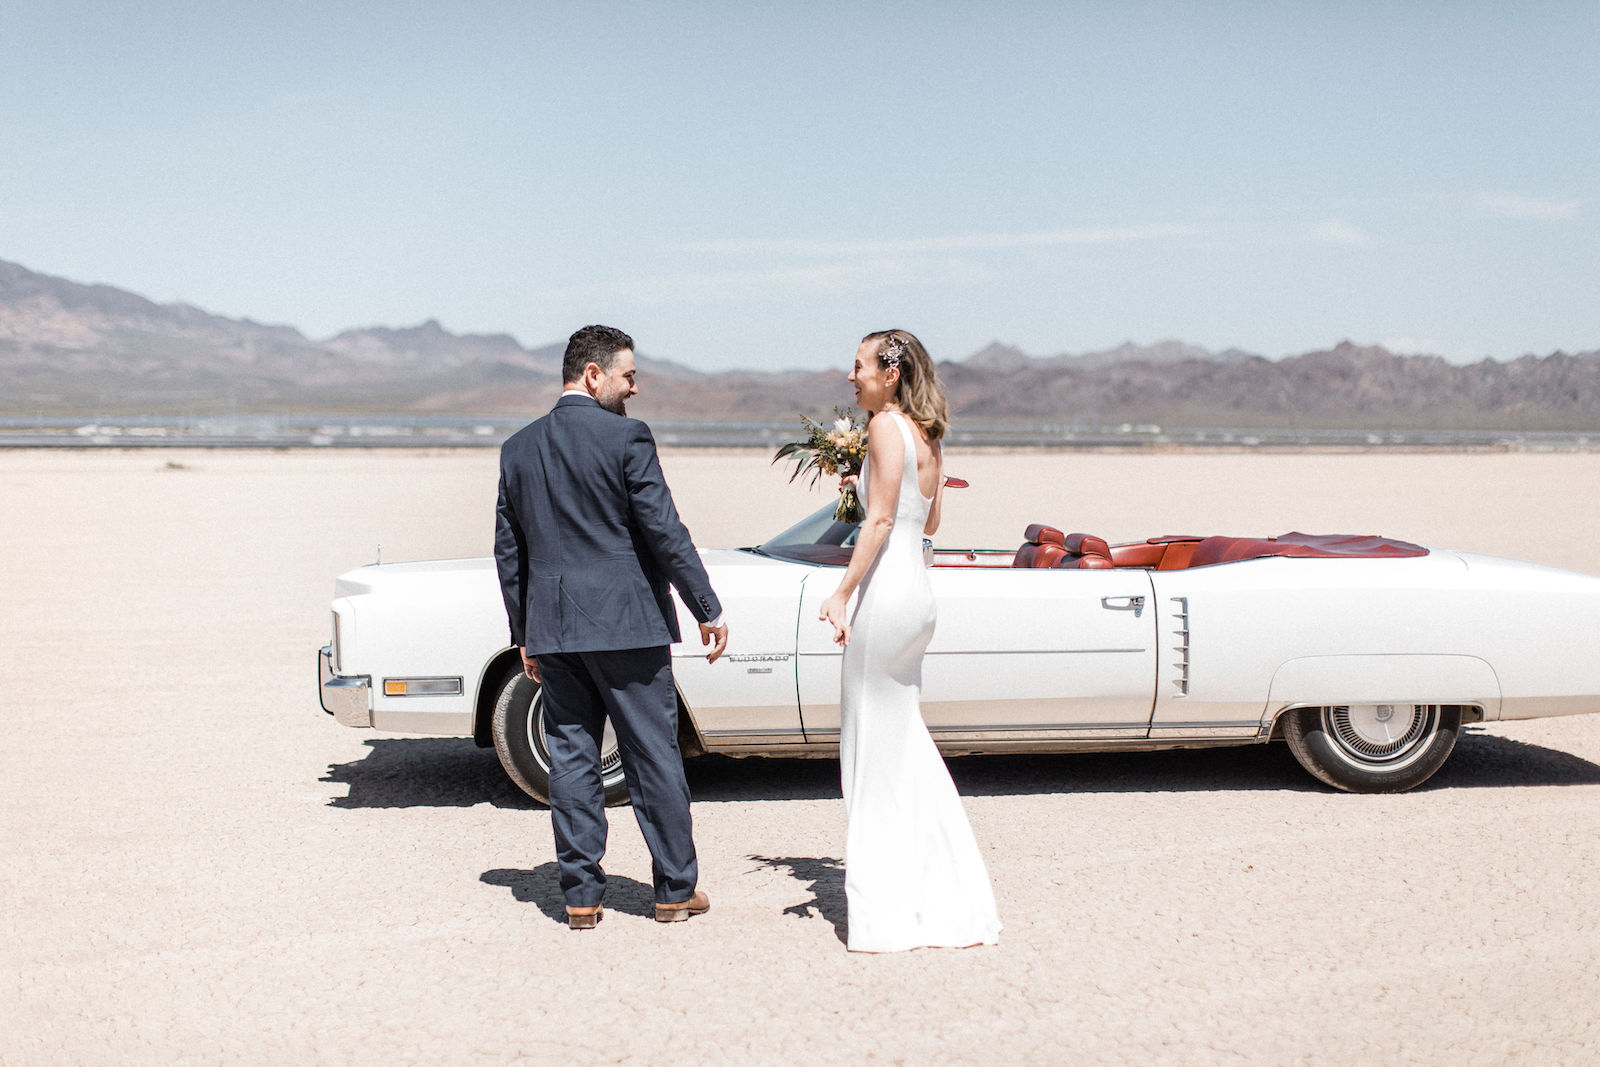 cadillac convertible dry lake bed elopement 00003.jpg